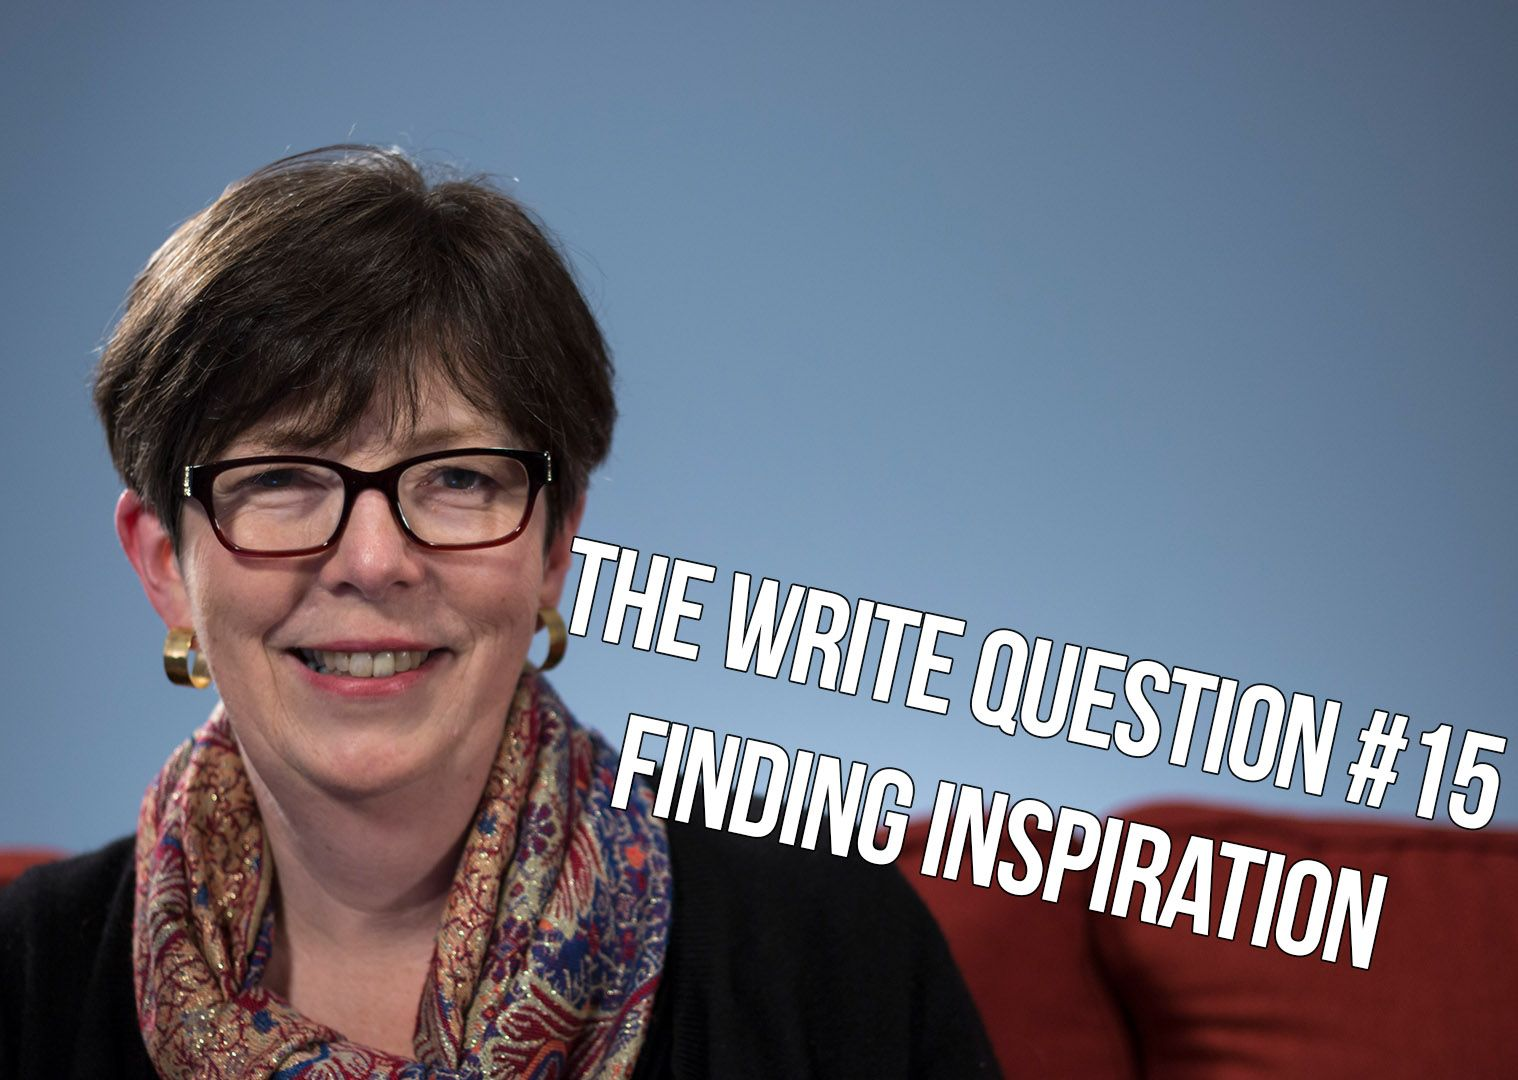 Is inspiration worth waiting for? [video]